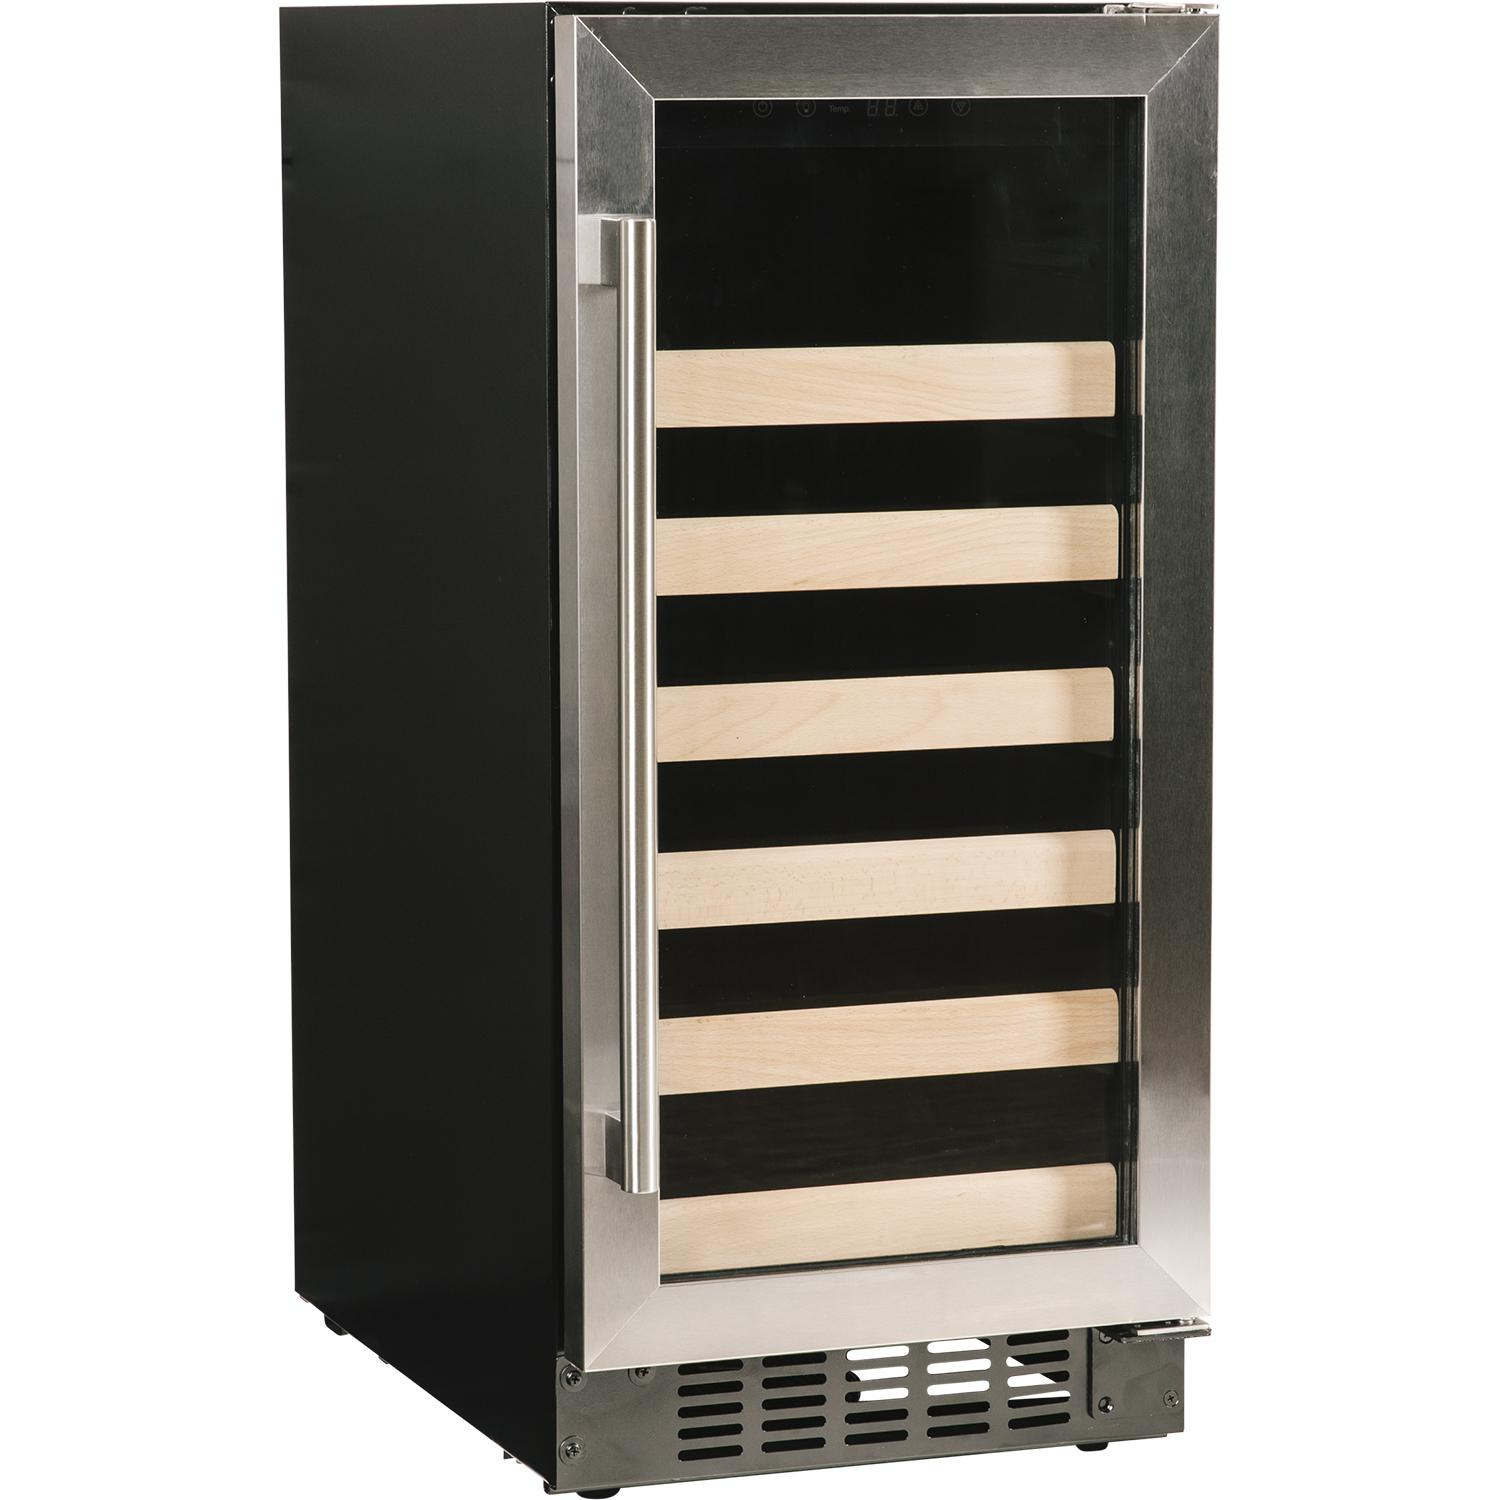 """Azure 15"""" 30 Bottle Wine Cooler - Stainless Steel - A115wc-s"""